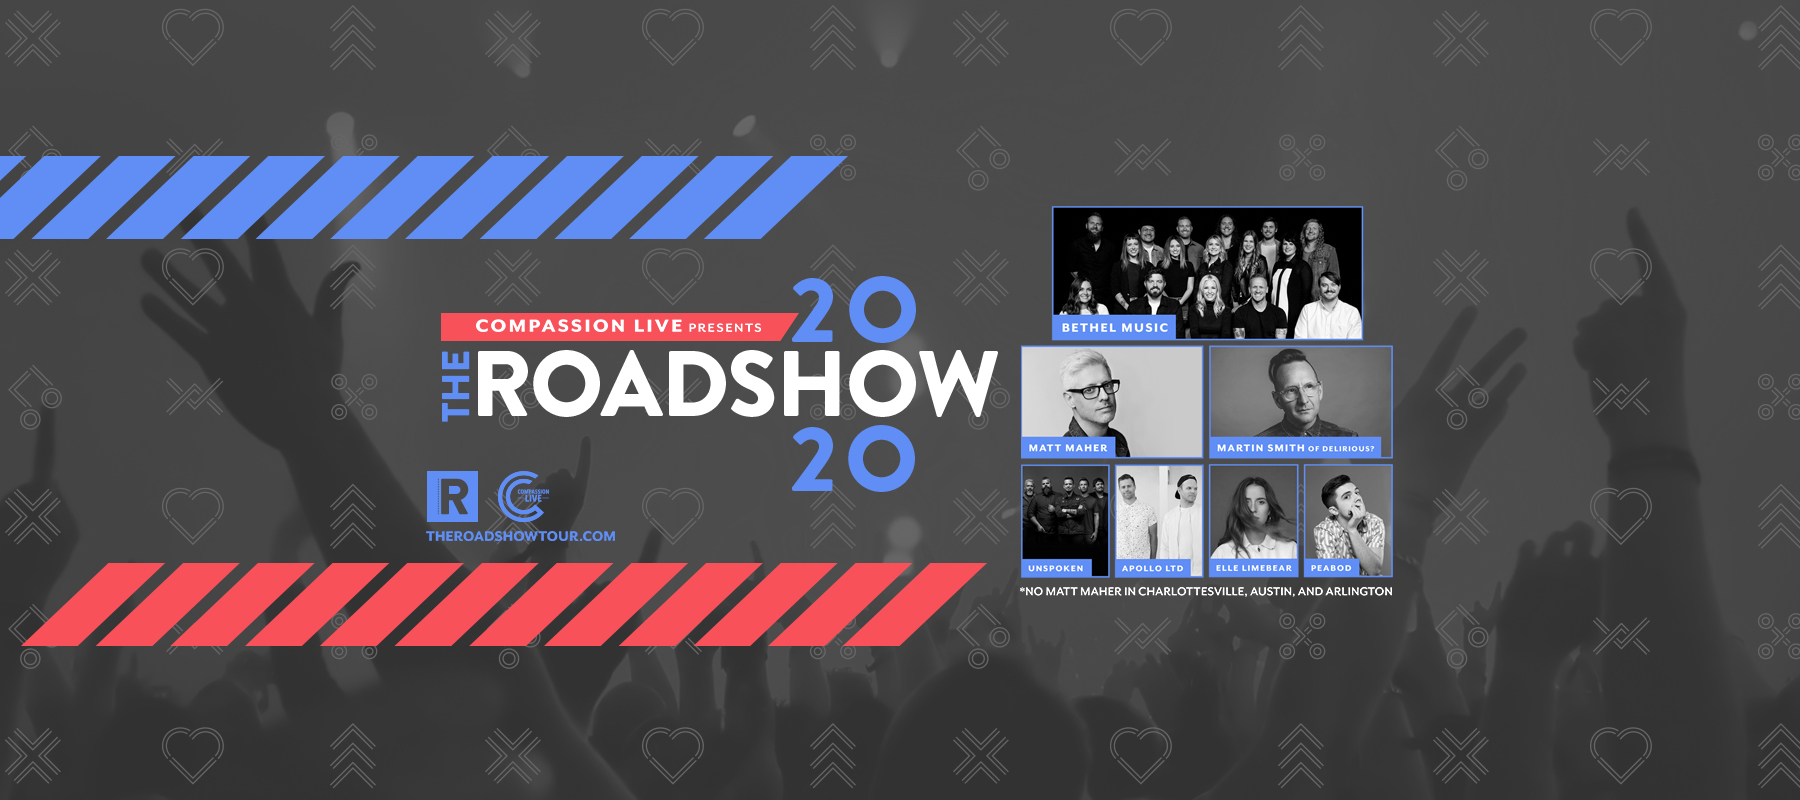 The Roadshow 2020 logo